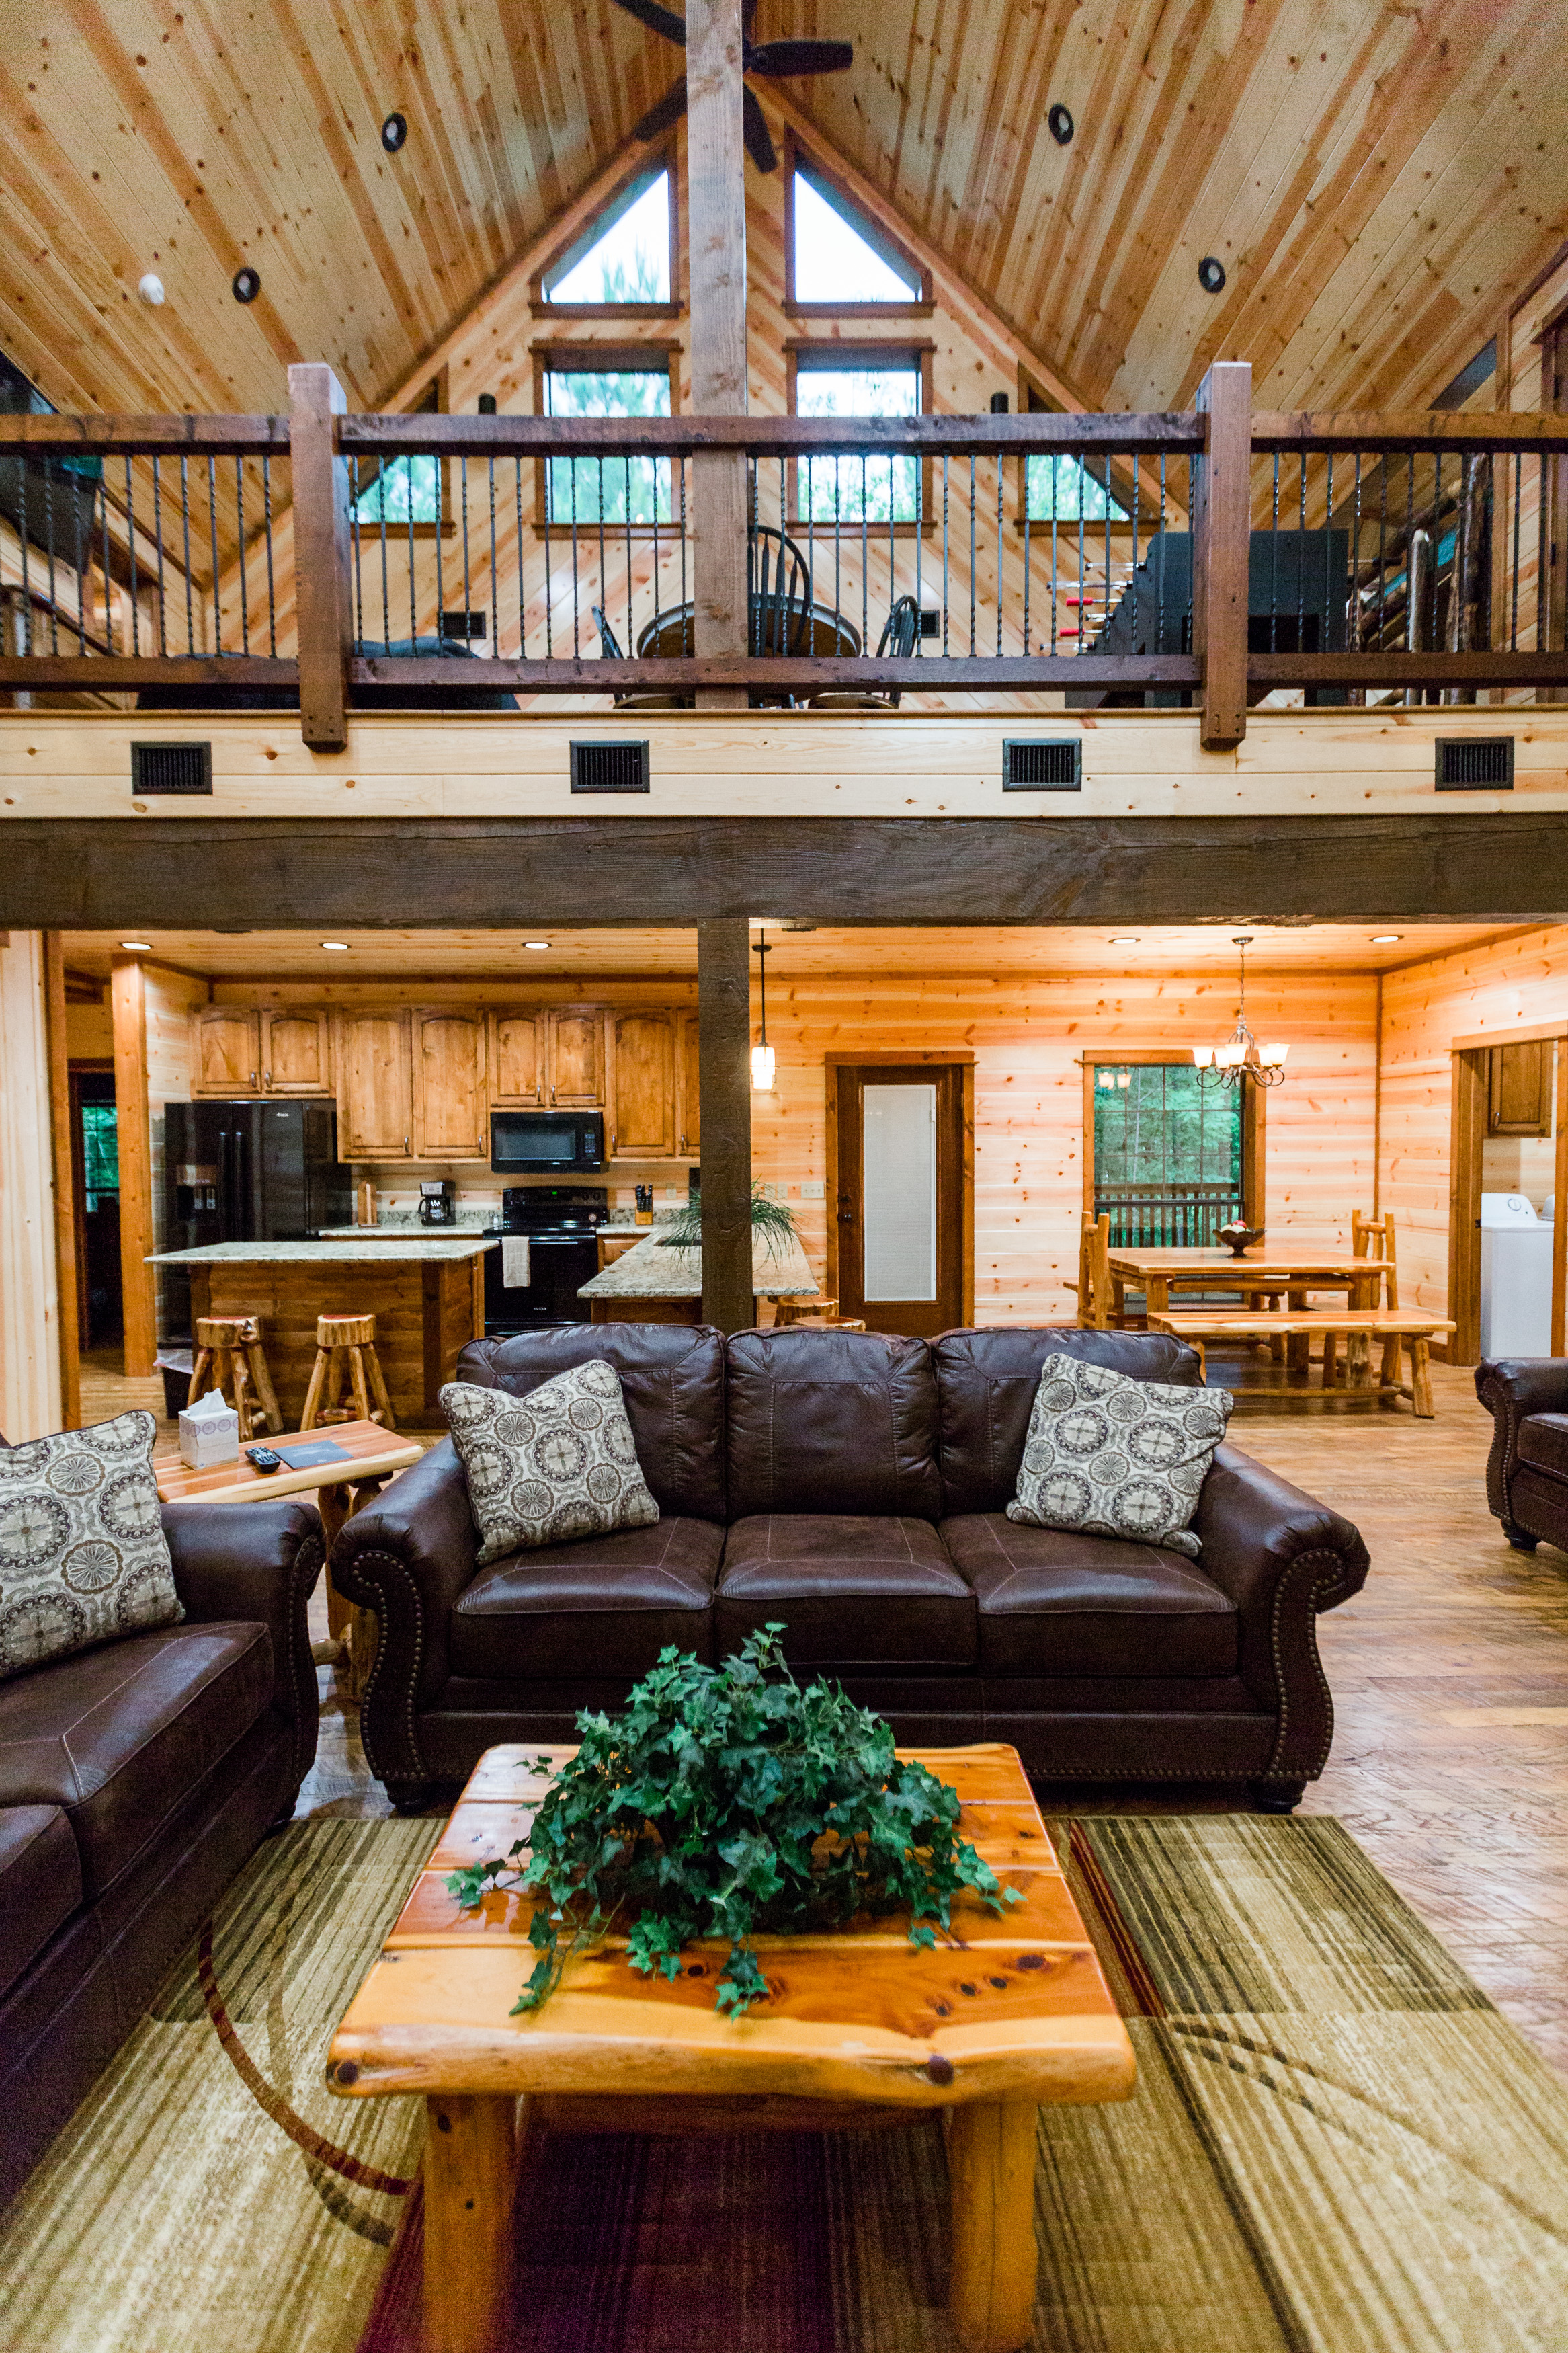 oklahoma luxury cabin rentals beavers bend vacation getaway hochatown mount fork river stephens gap lake ouachita mountains